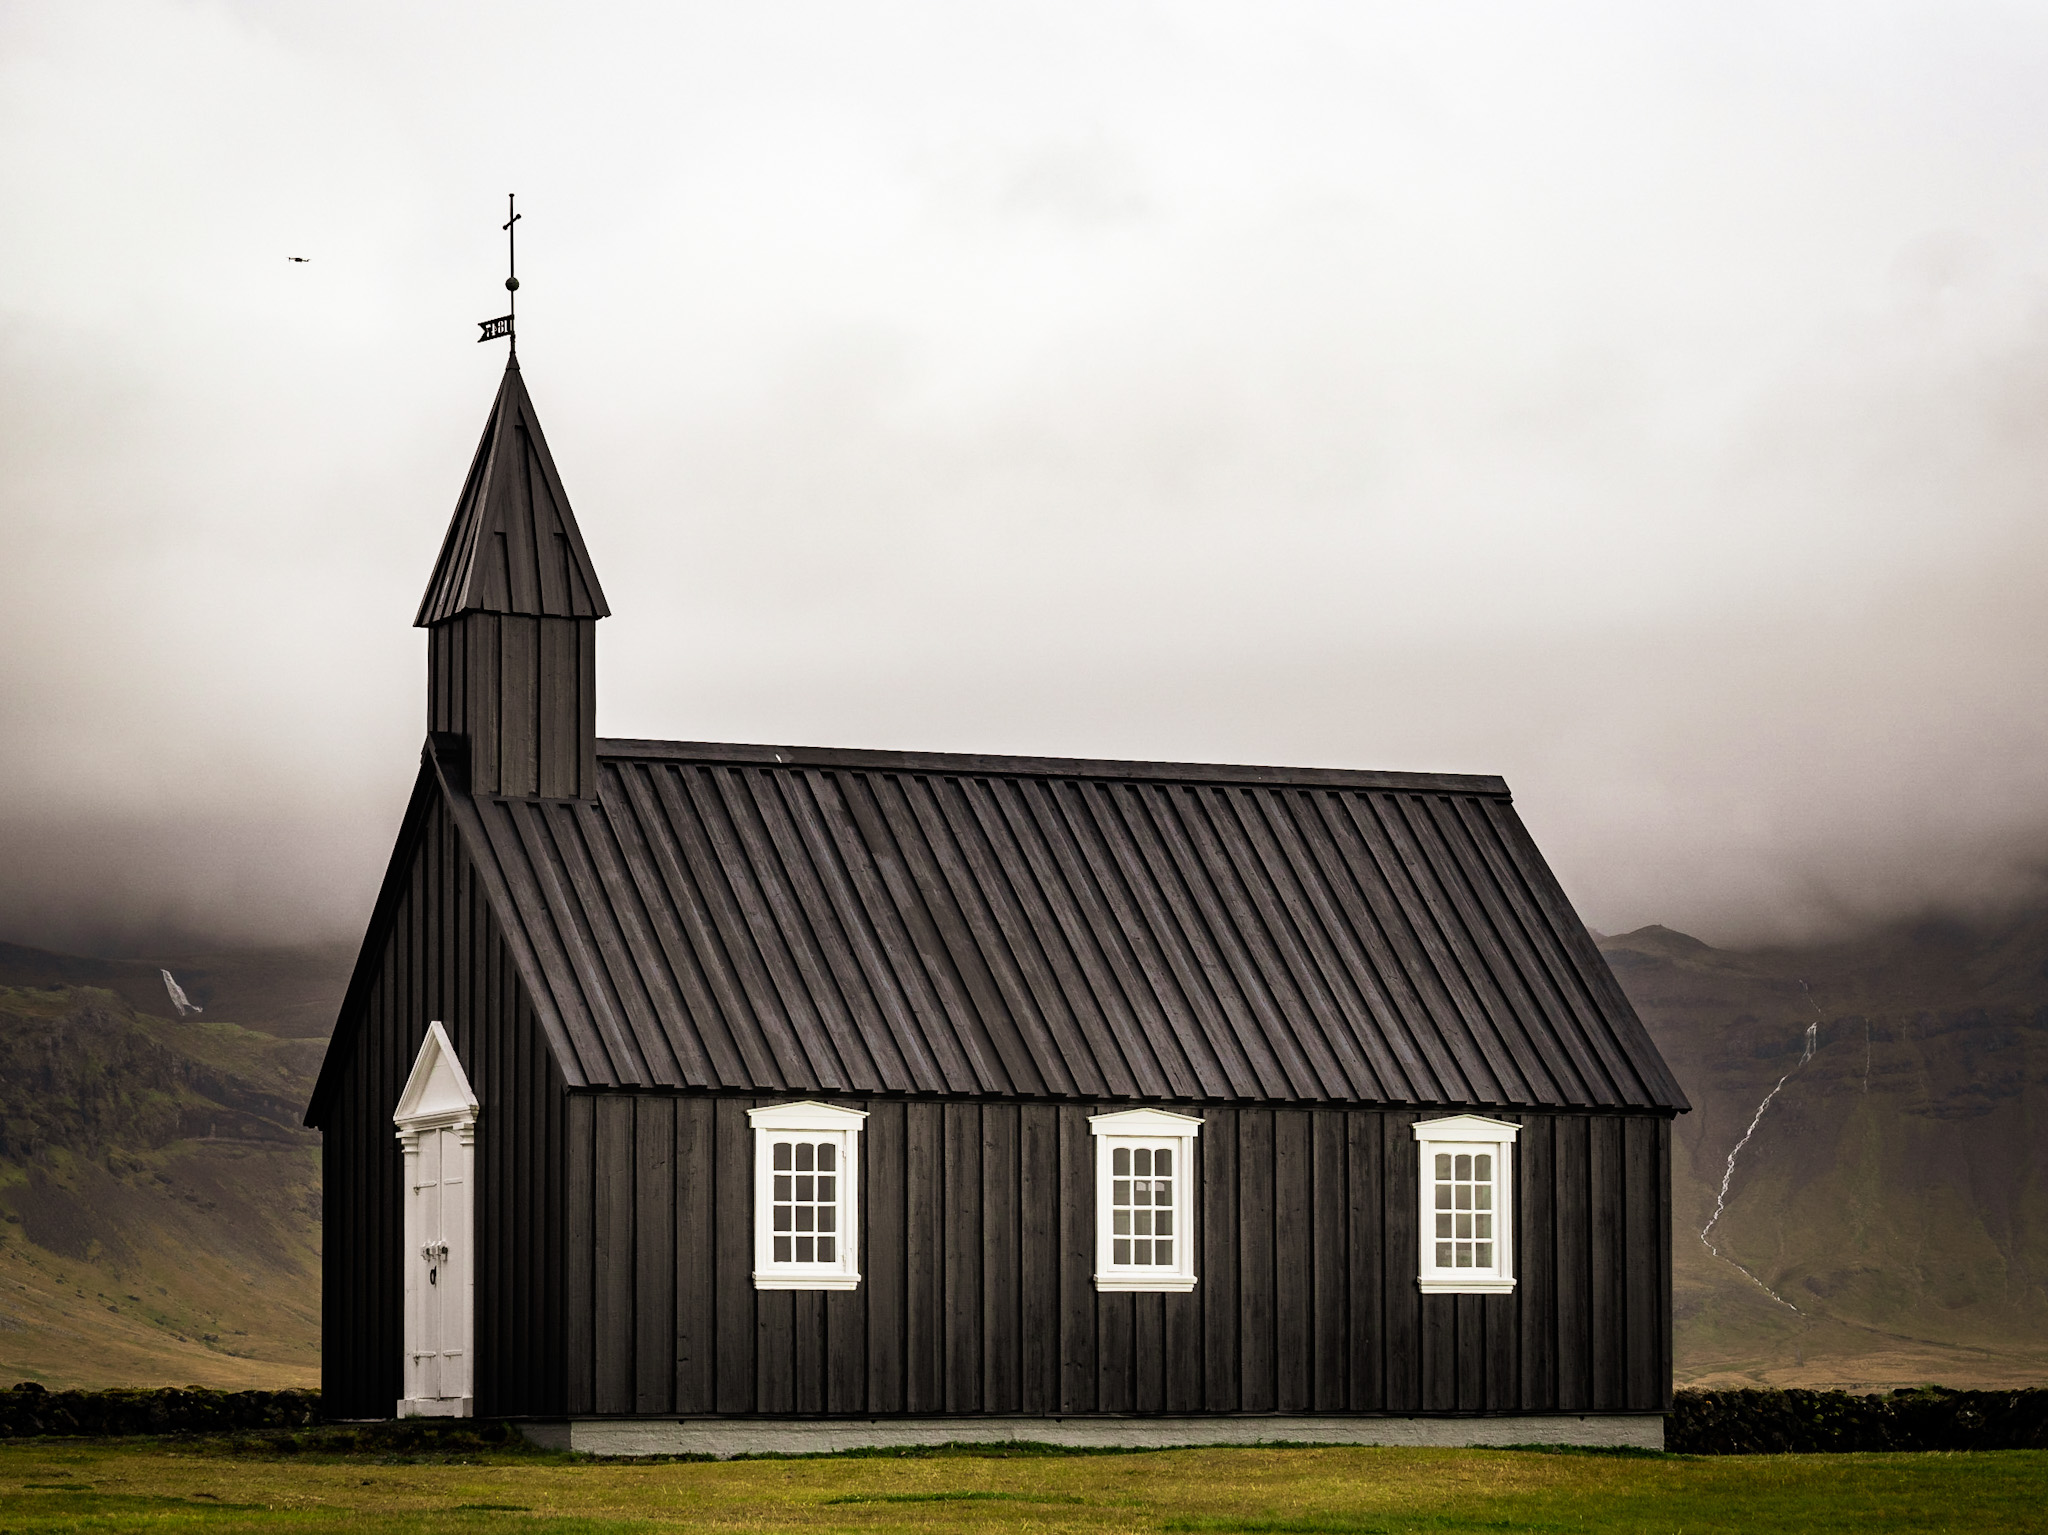 Black Church in the Gloom